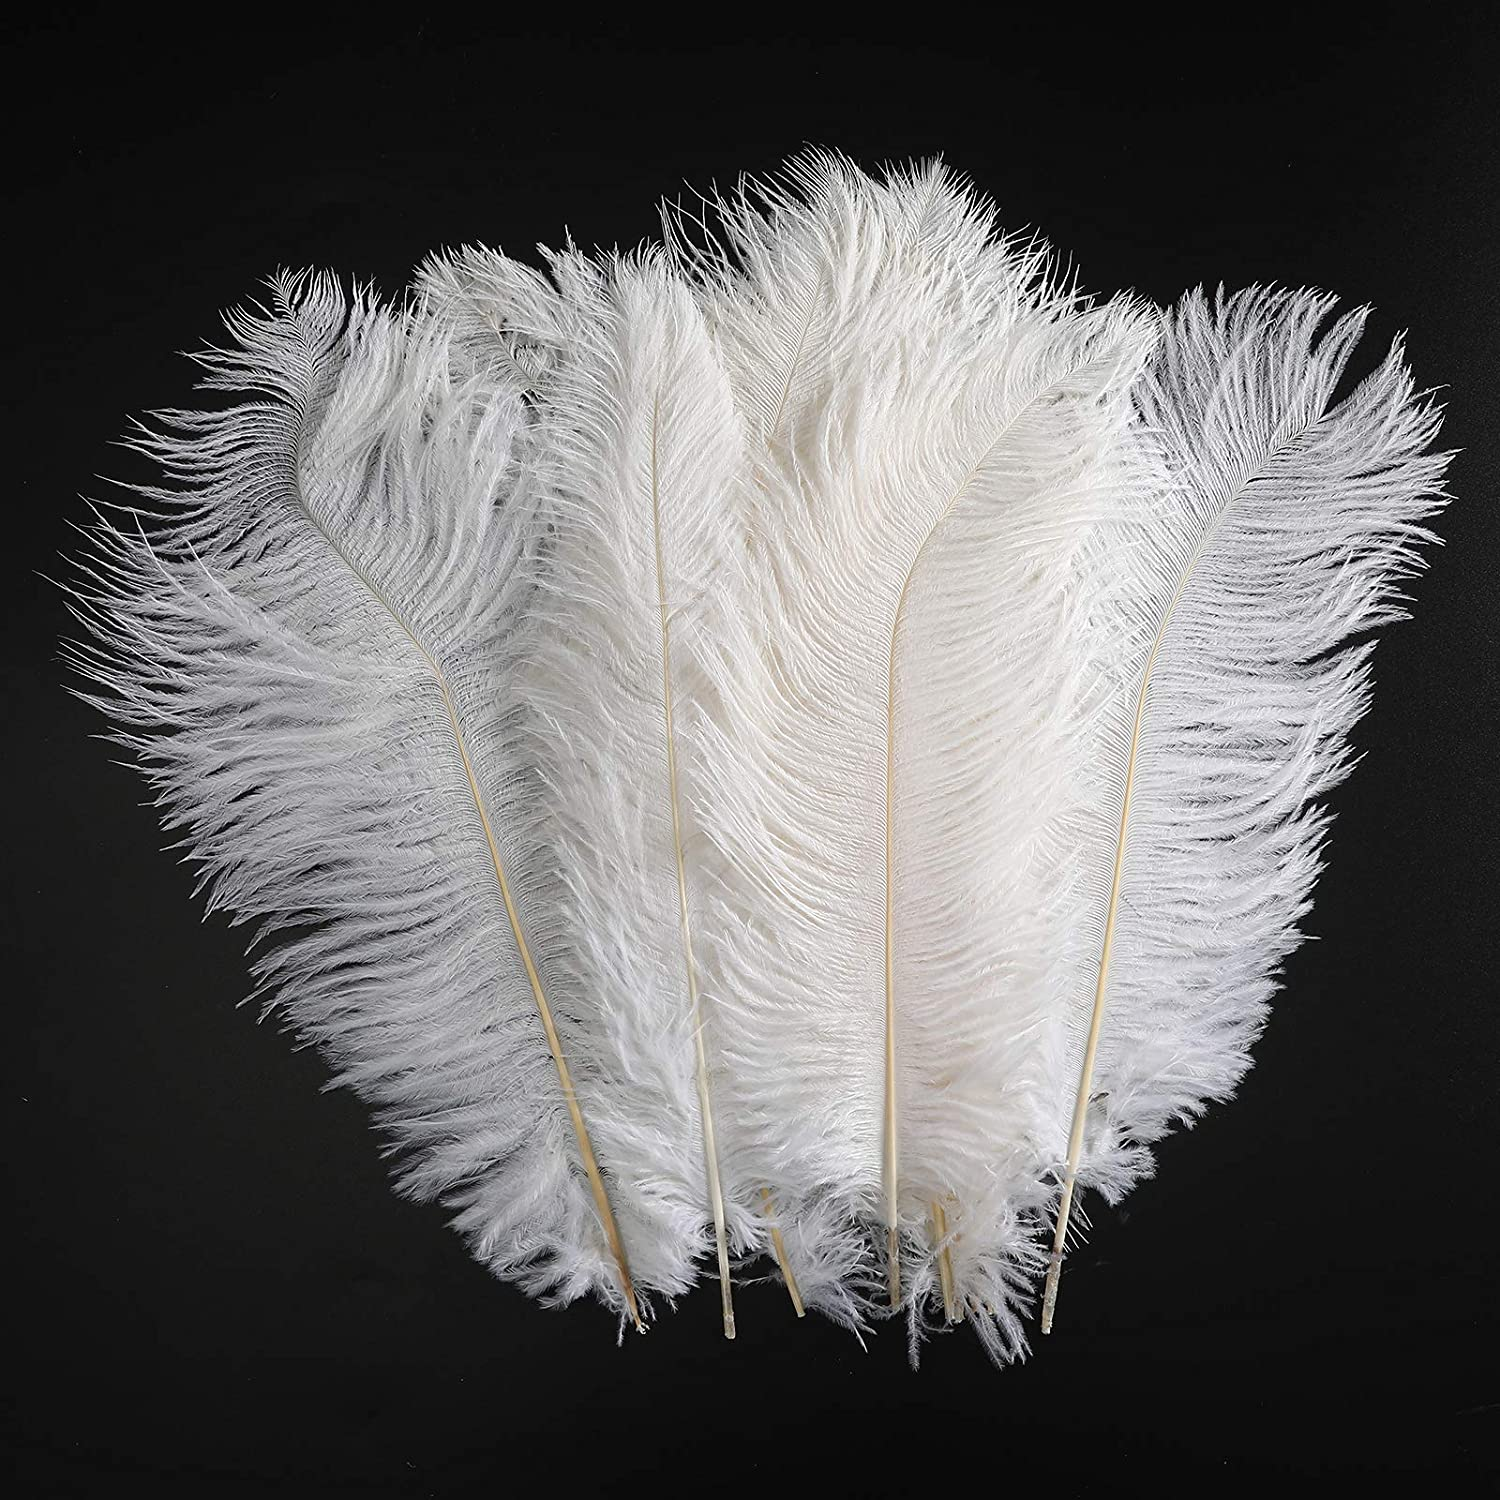 Ostrich Feathers Decoration Crafts Bulk - 20pcs Natural Plumas Decor for Home Wedding Party DIY Feather Erikord(7-10inch, White)